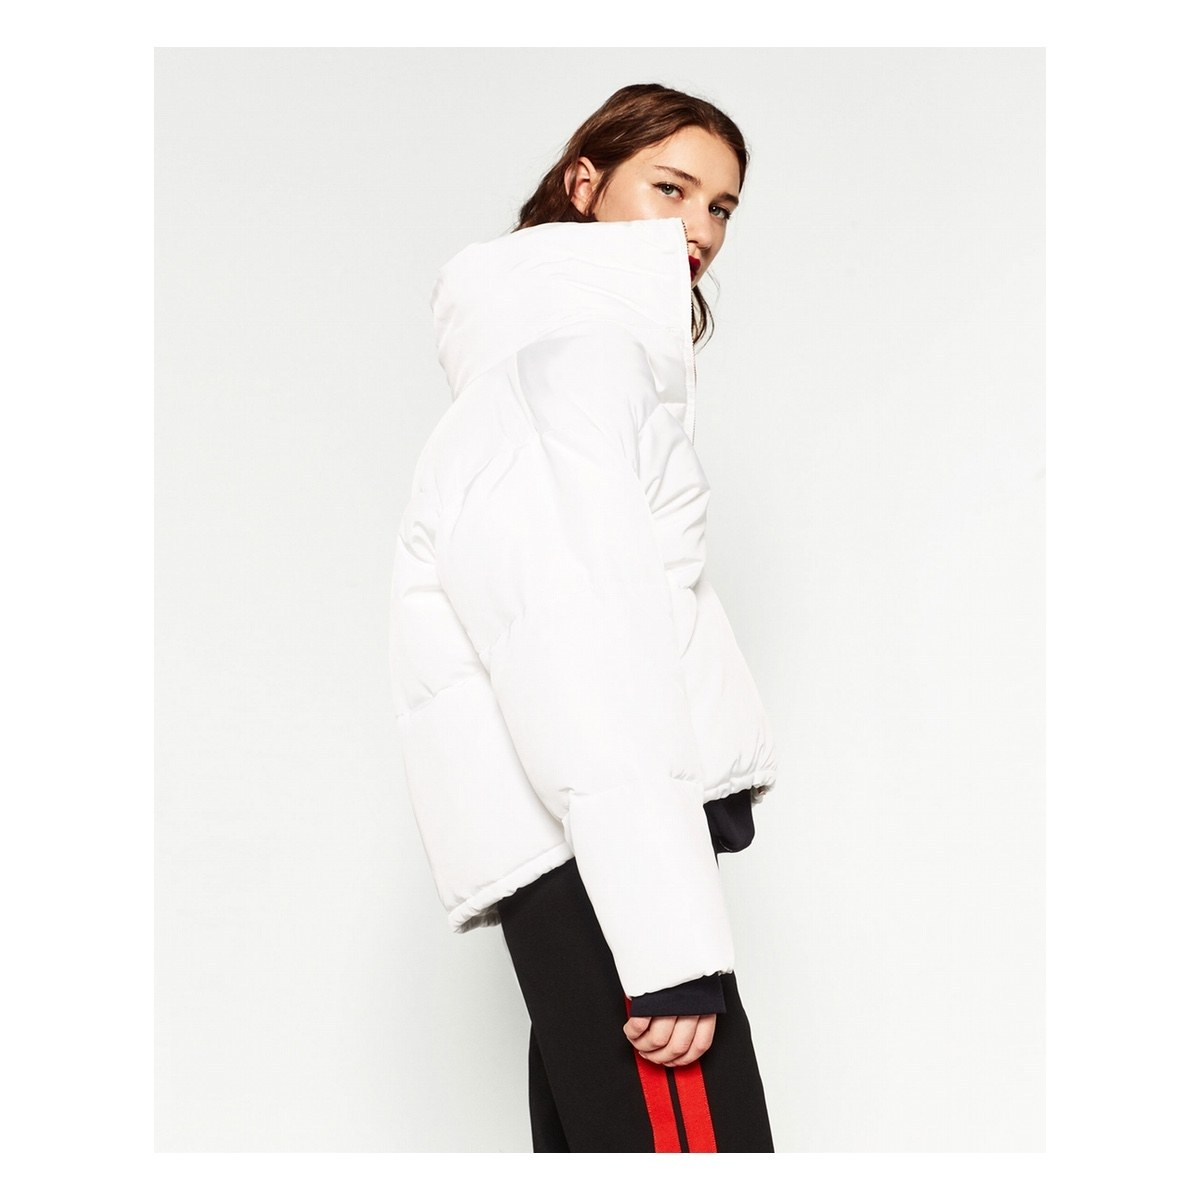 The fast fashion option: puffer coat from Zara in total white, oversize neck, paired with black sleeves underneath and sporty pants with red details to spice up the look.